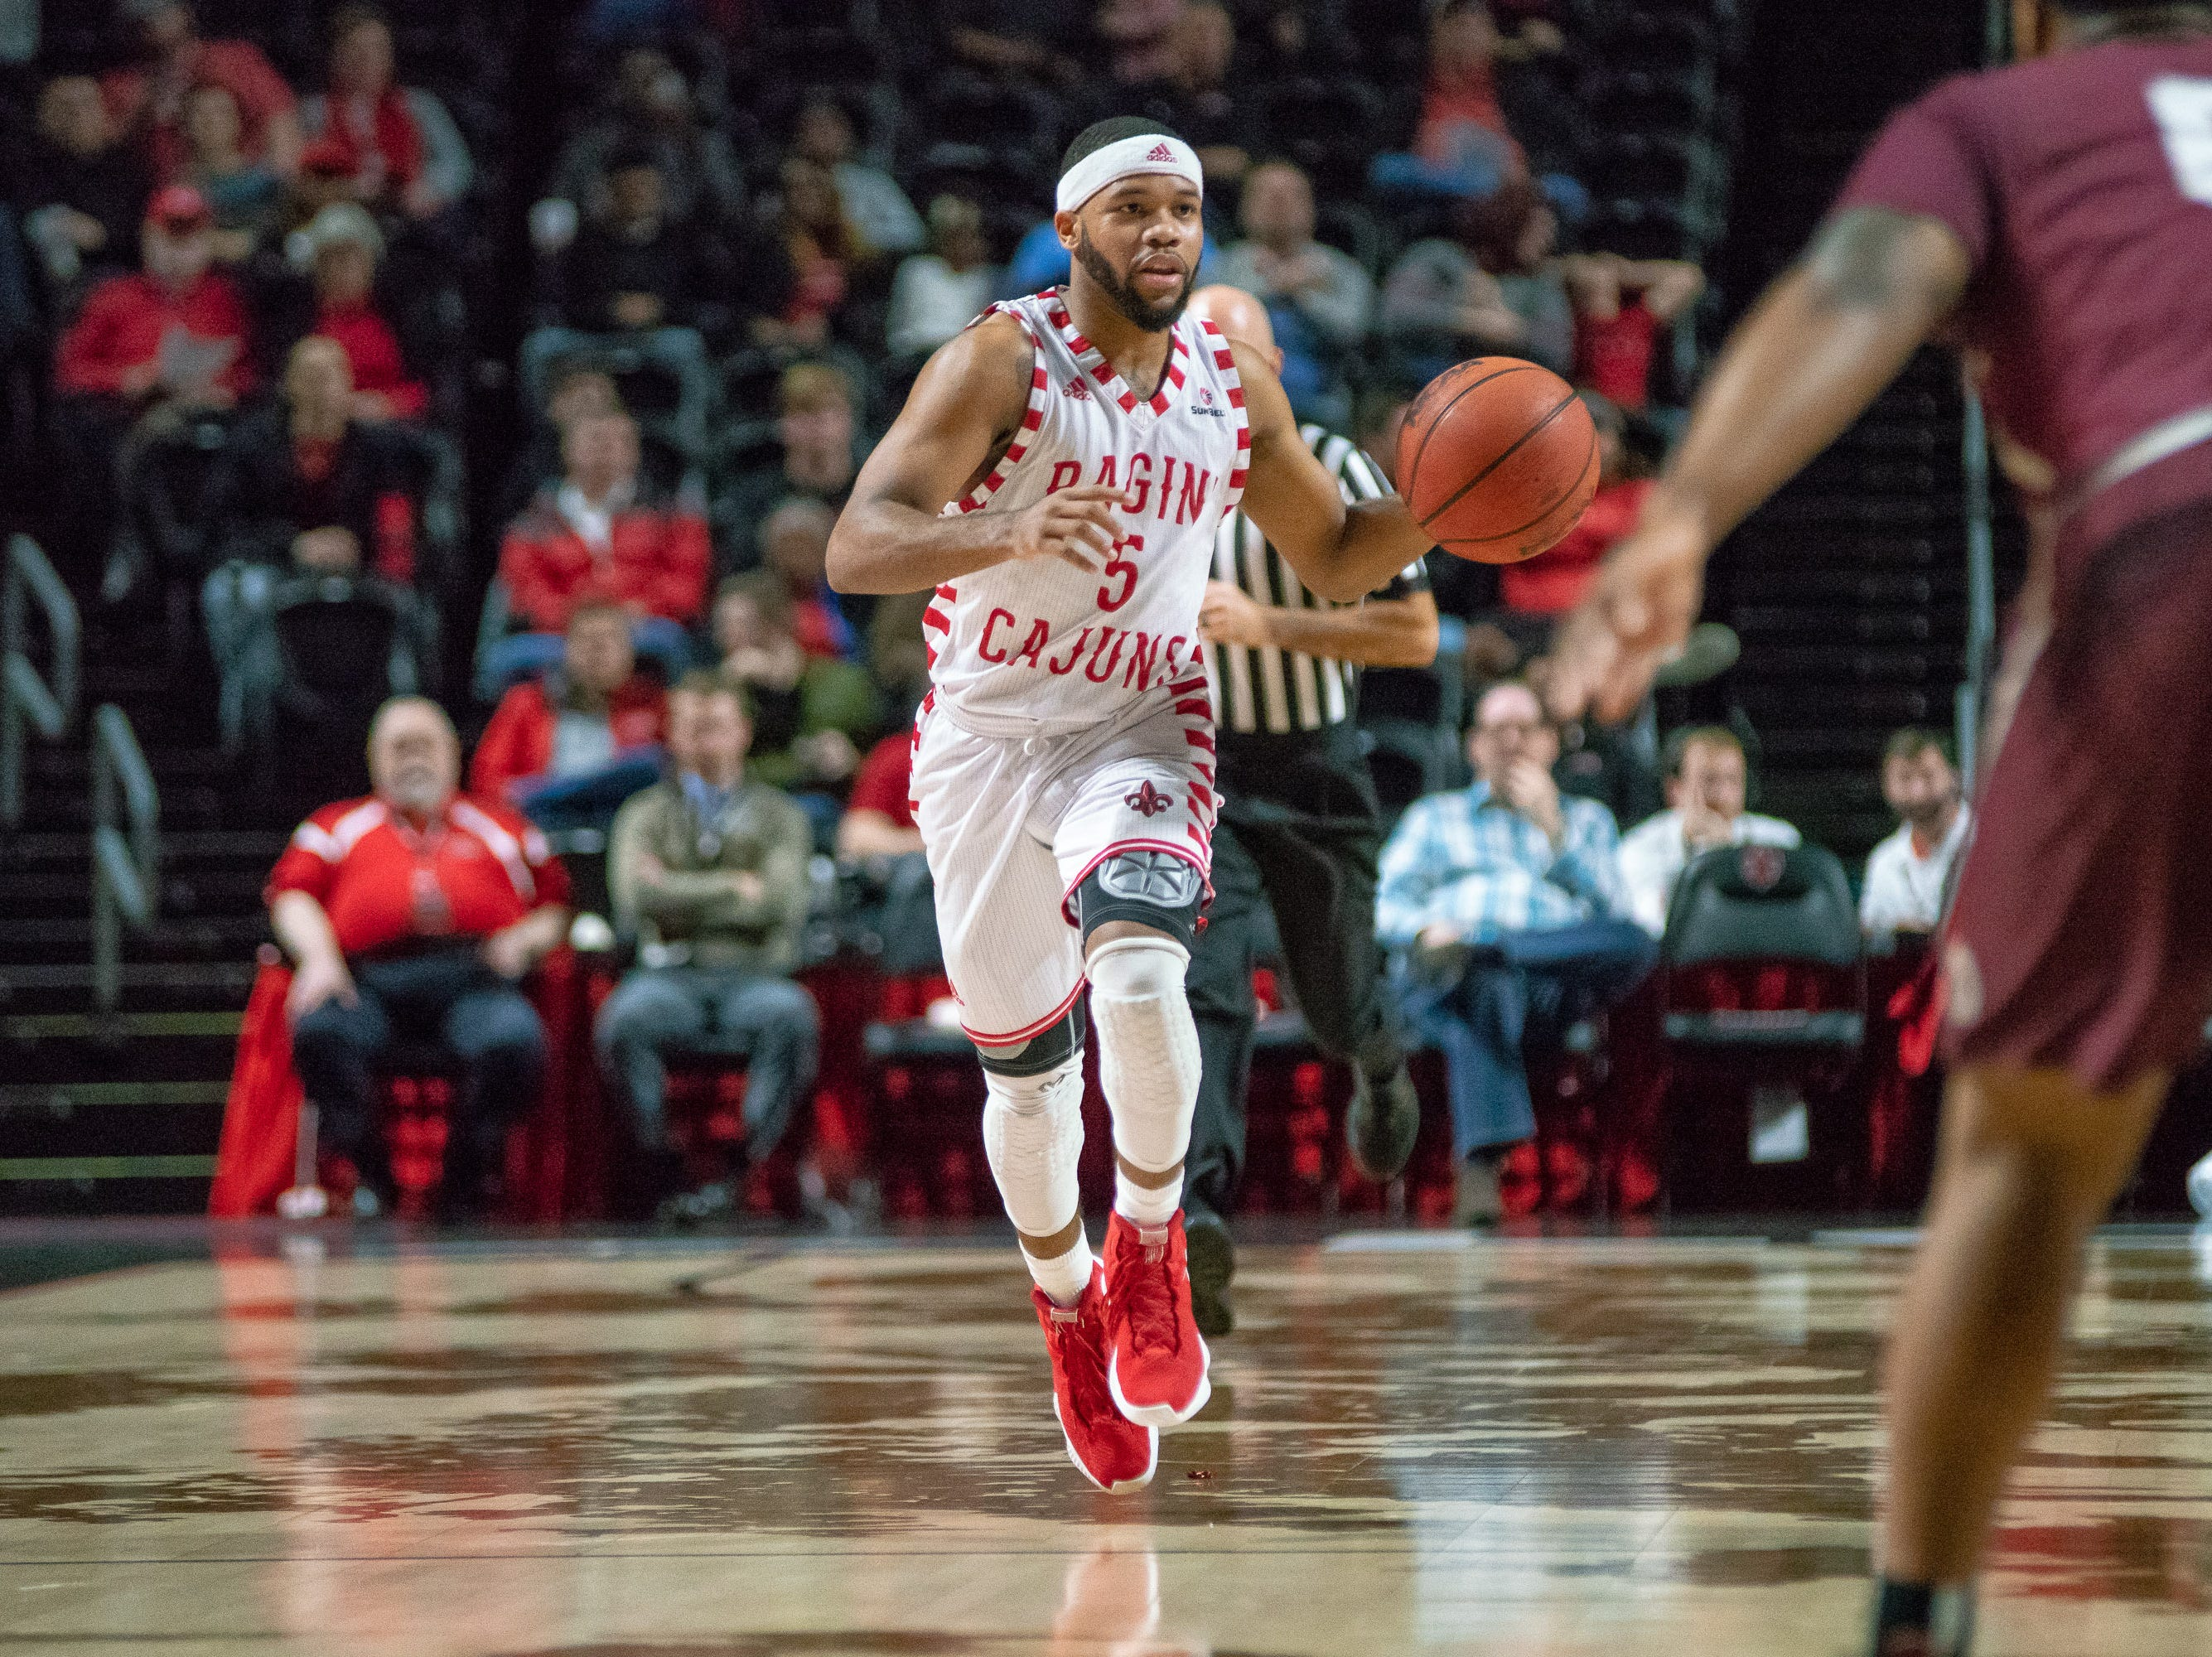 UL's Trajan Wesley moves the ball down the court as the Ragin' Cajuns take on the Little Rock Trojans at the Cajundome on January 5, 2019.